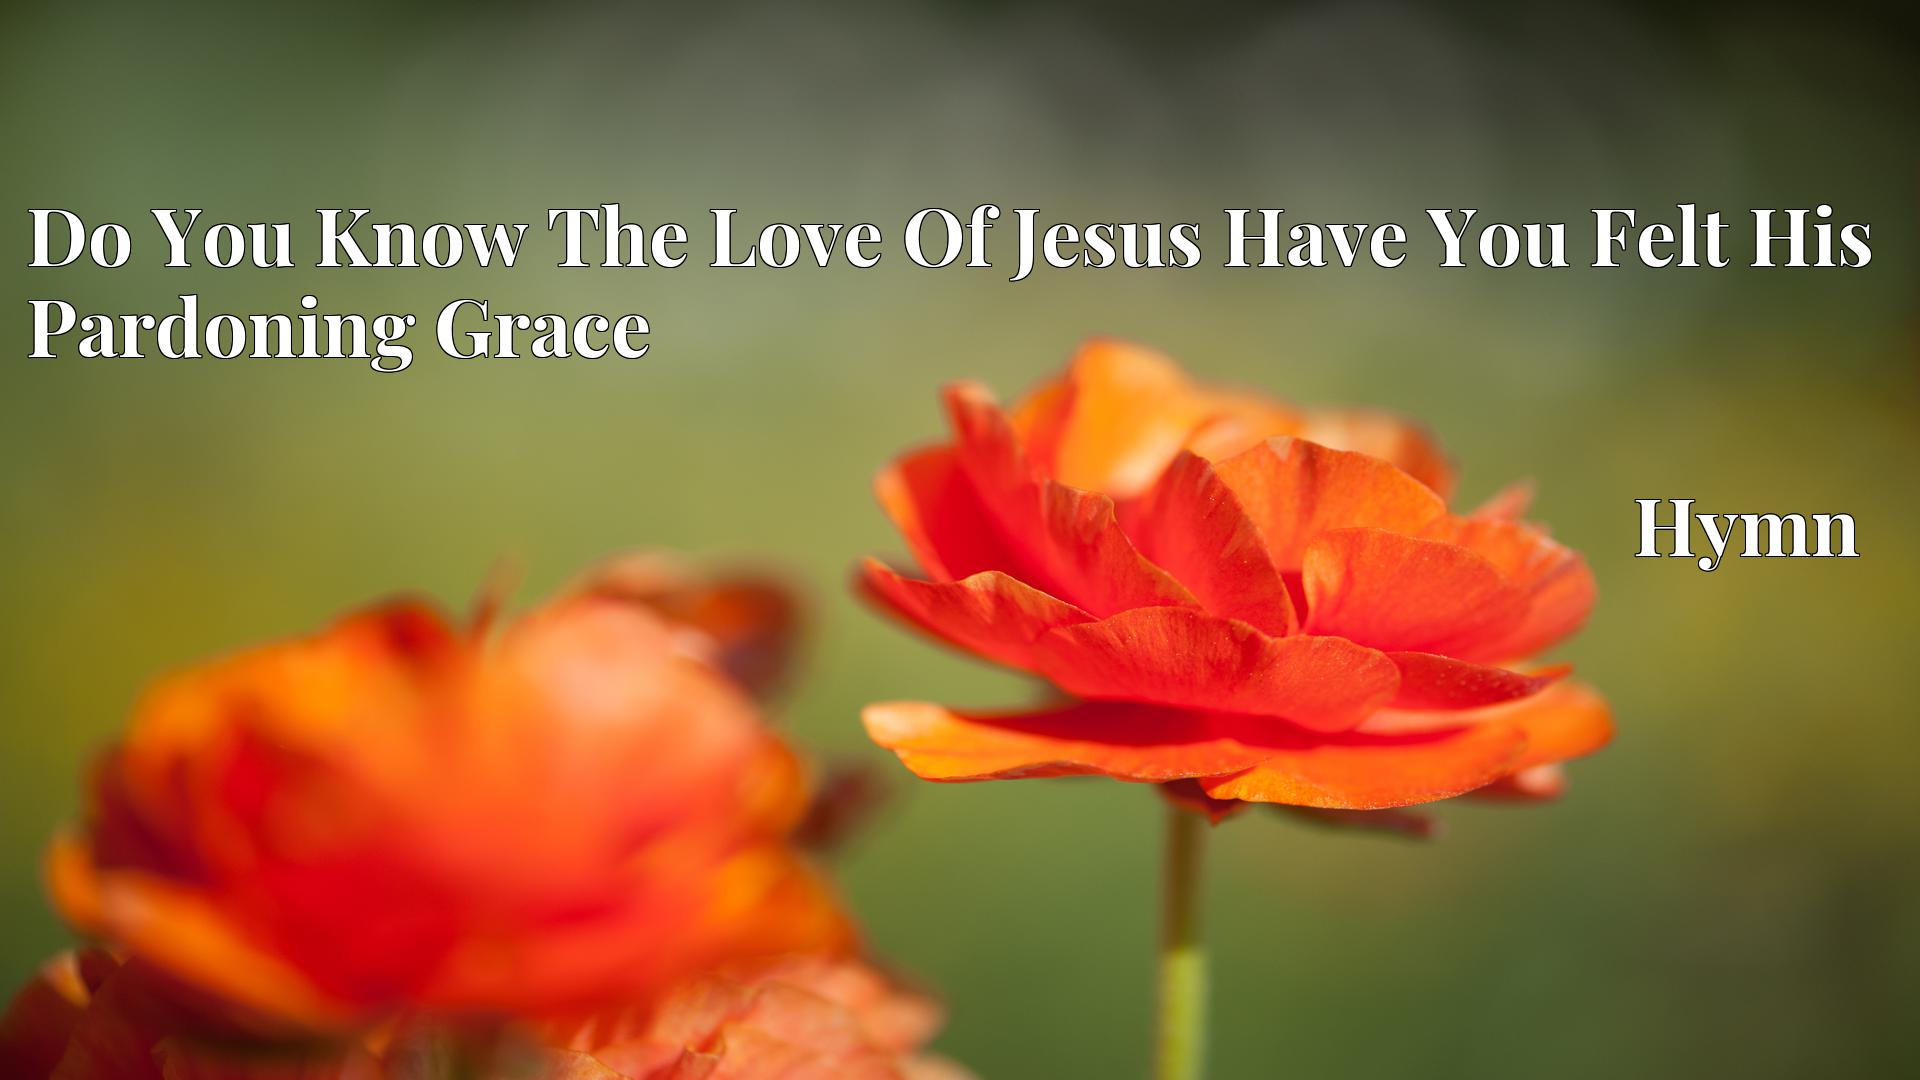 Do You Know The Love Of Jesus Have You Felt His Pardoning Grace - Hymn